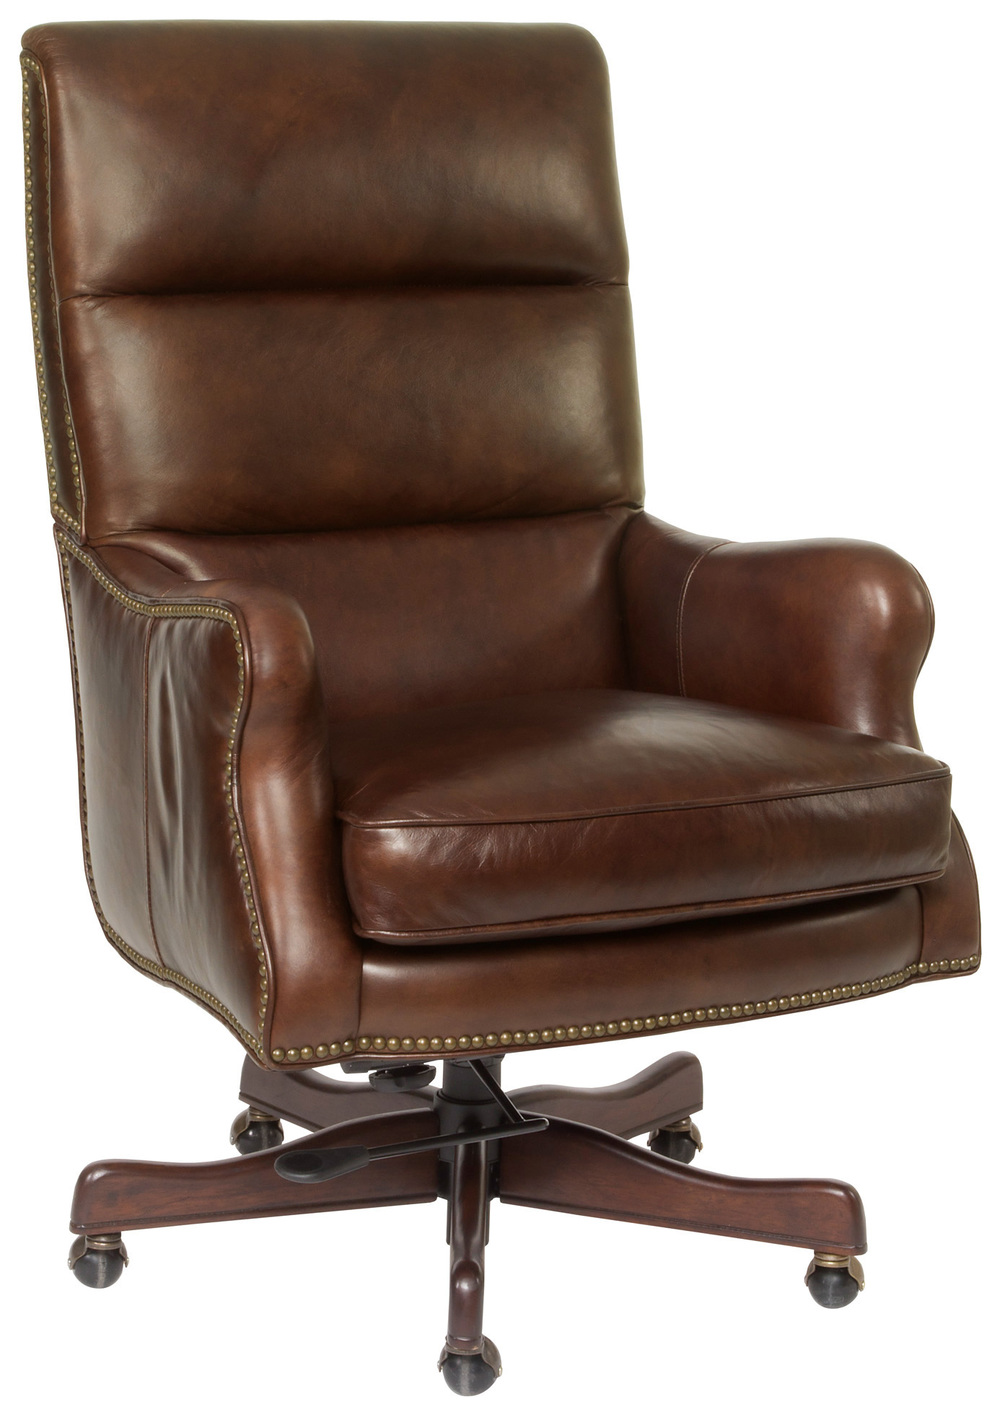 Hooker Furniture - Victoria Executive Chair